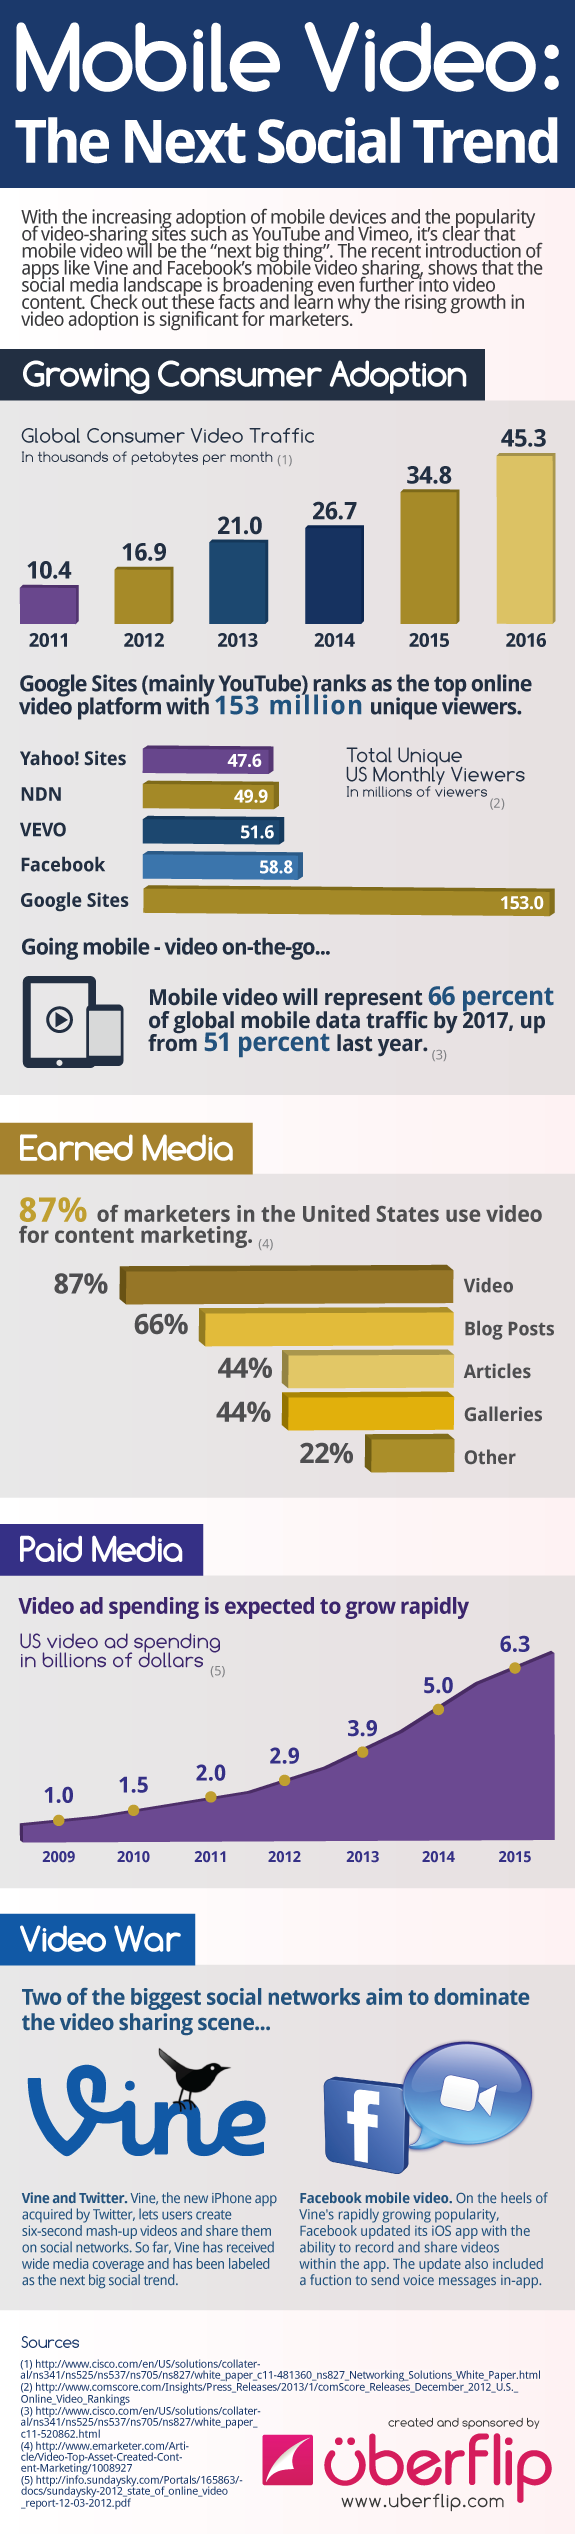 Mobile Video: the next social trend - #infographic #video #mobile